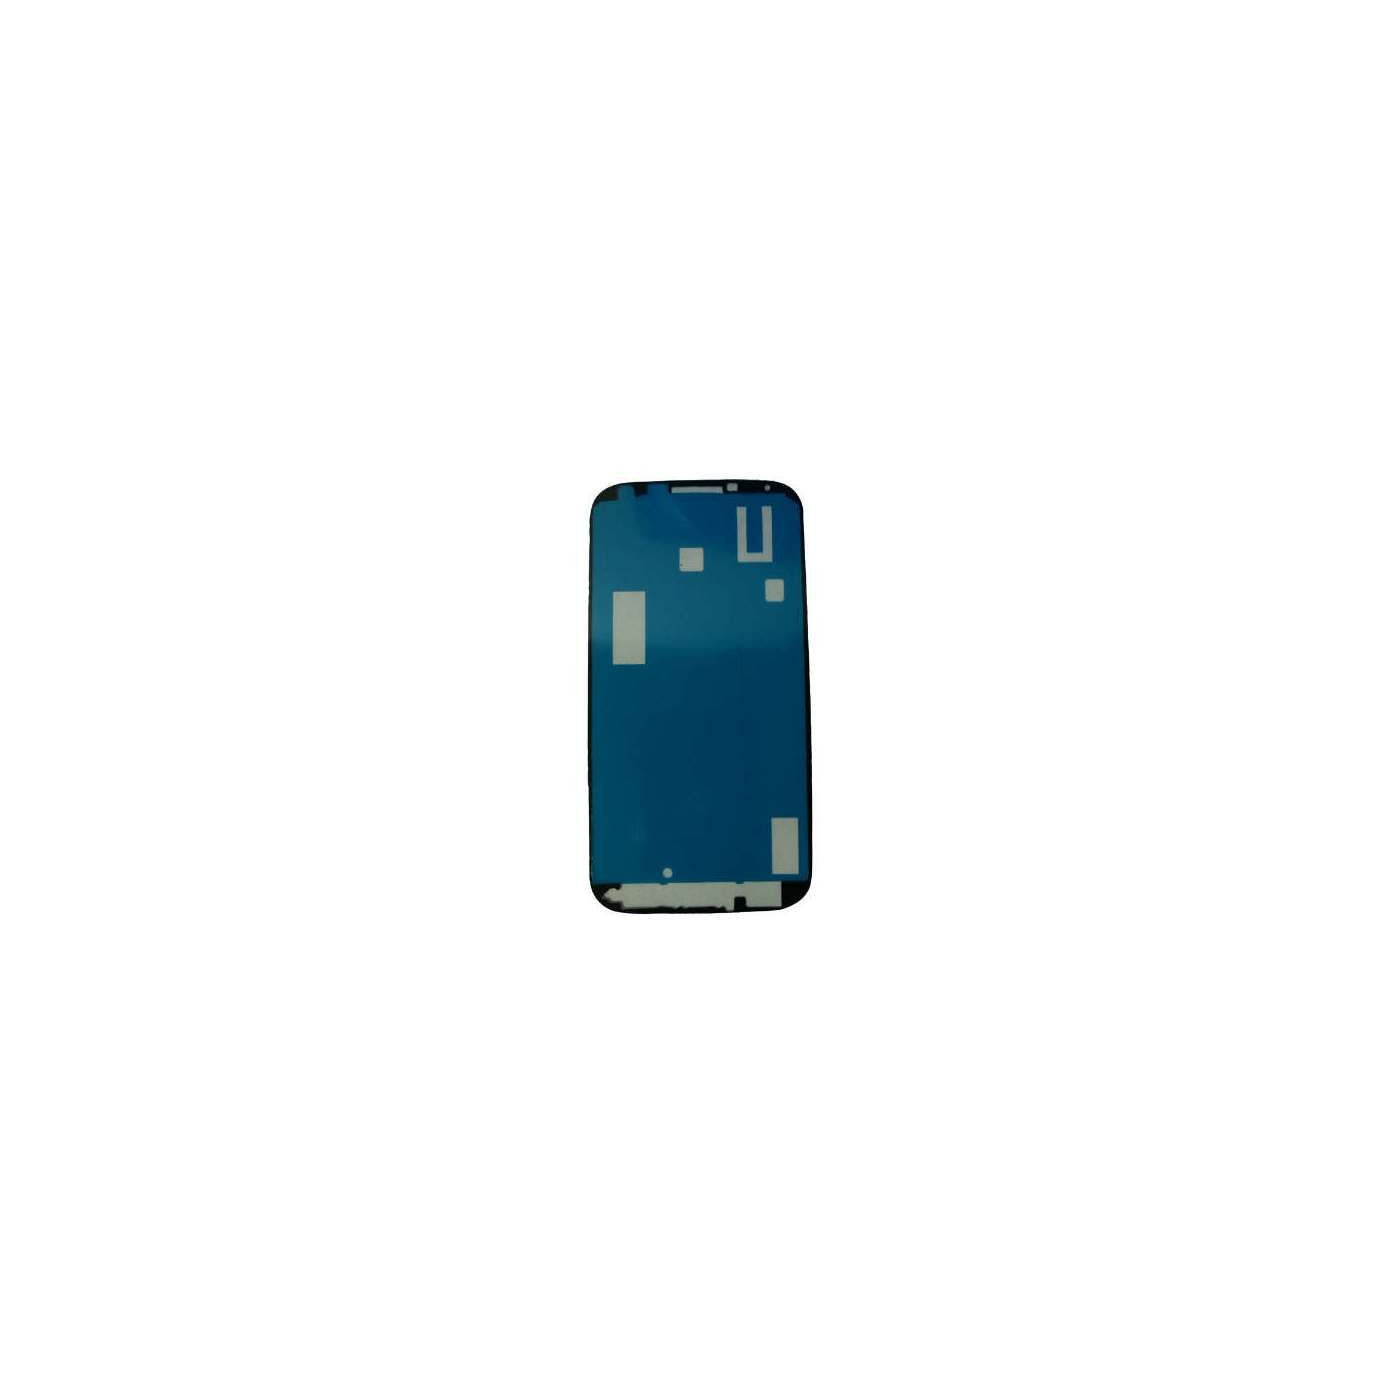 Biadhesive for glass samsung galaxy s4 adhesive touch screen display